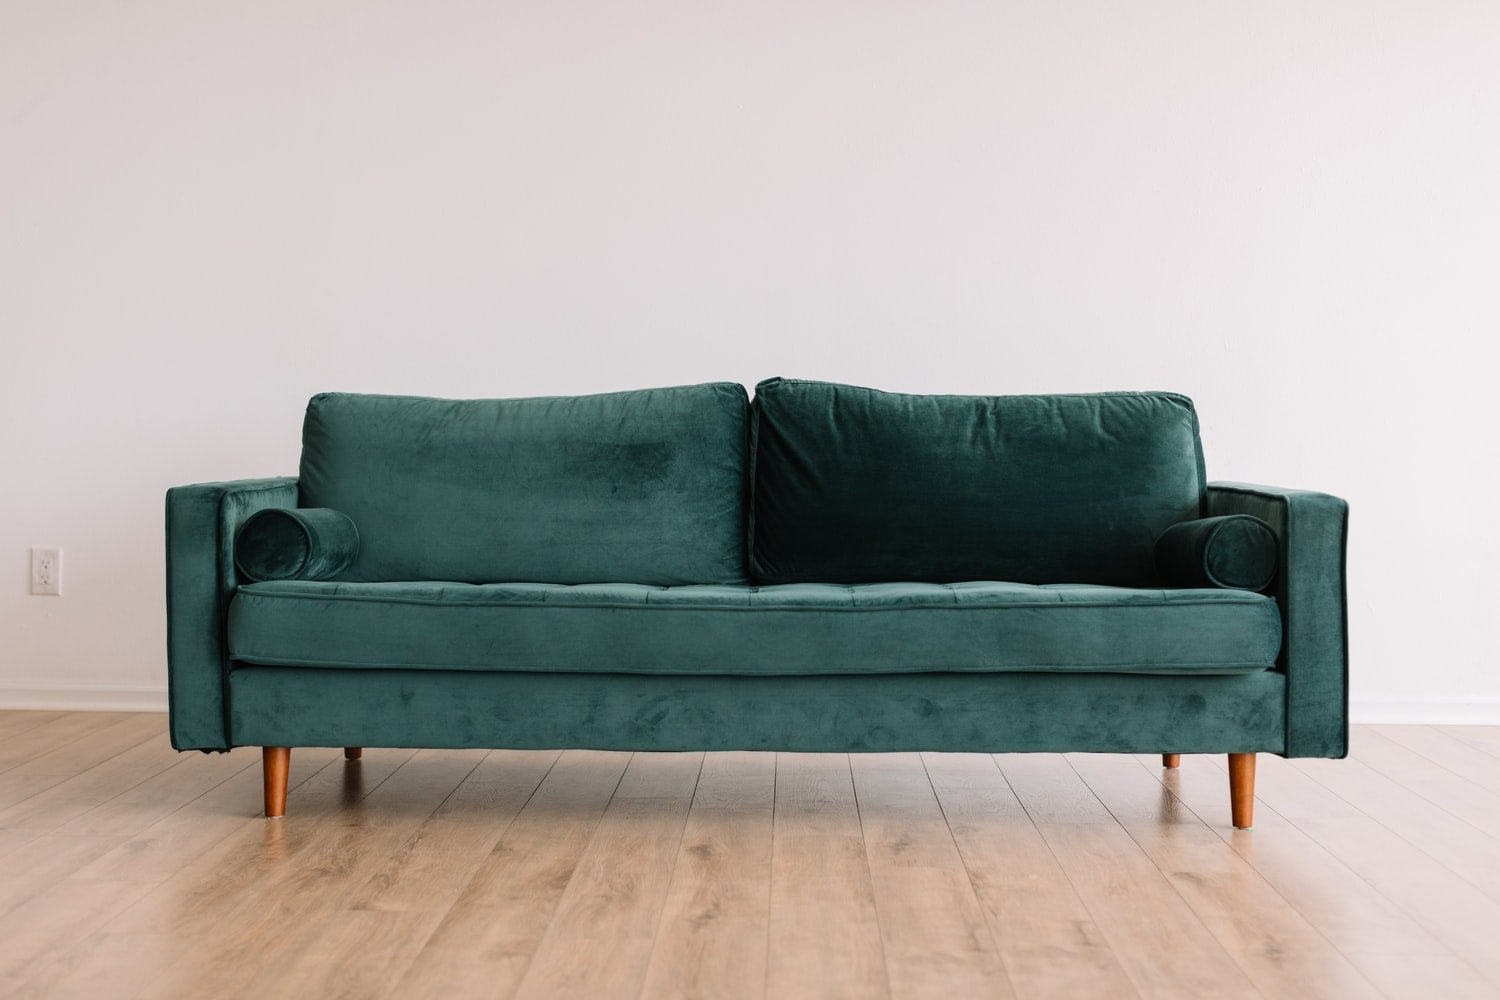 furnishing your house on a budget